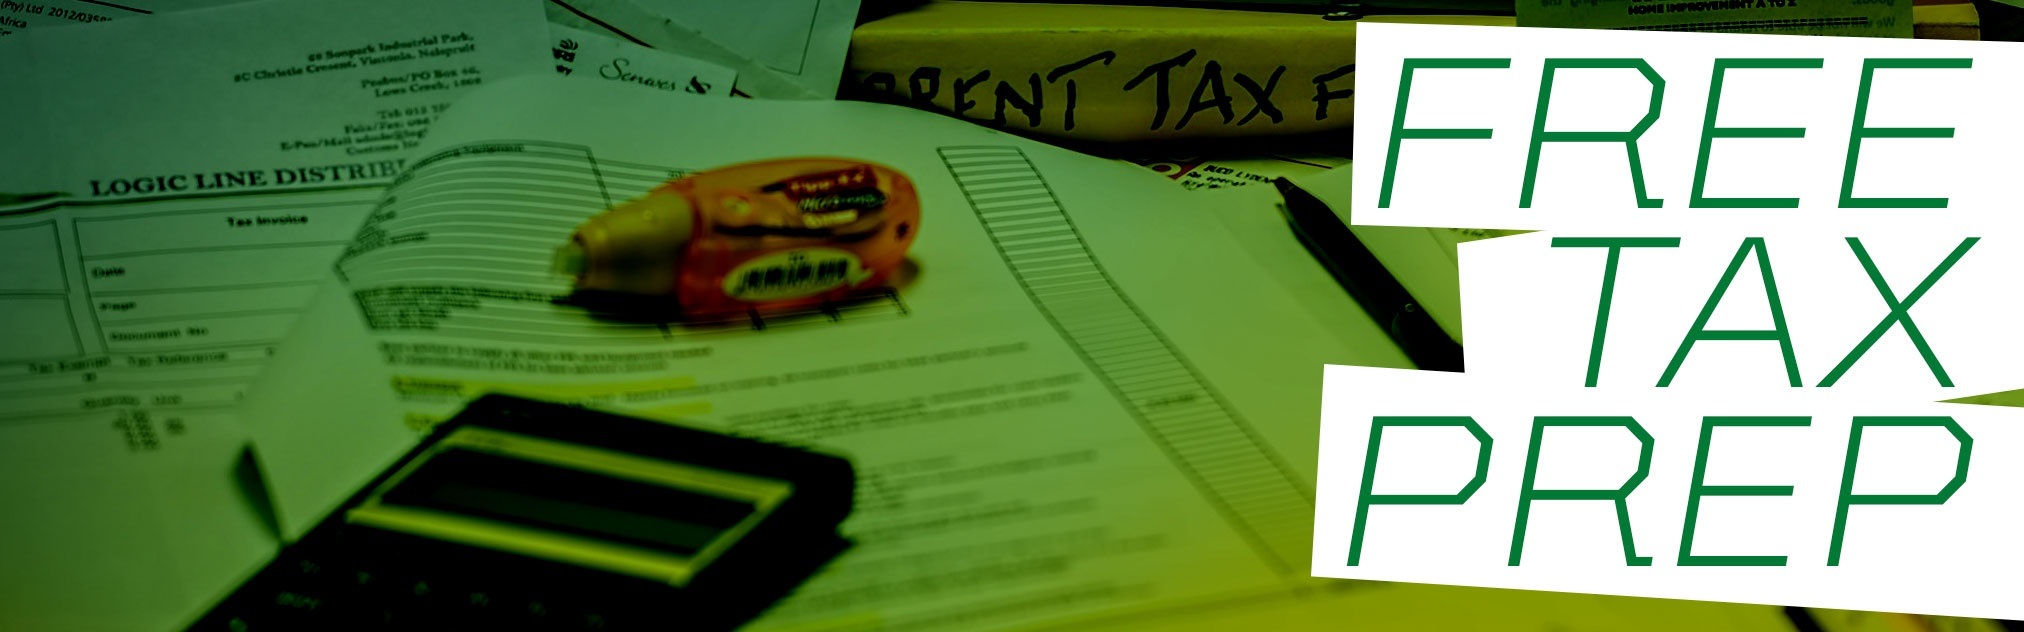 """""""Free Tax Prep"""" against background of tax documents"""